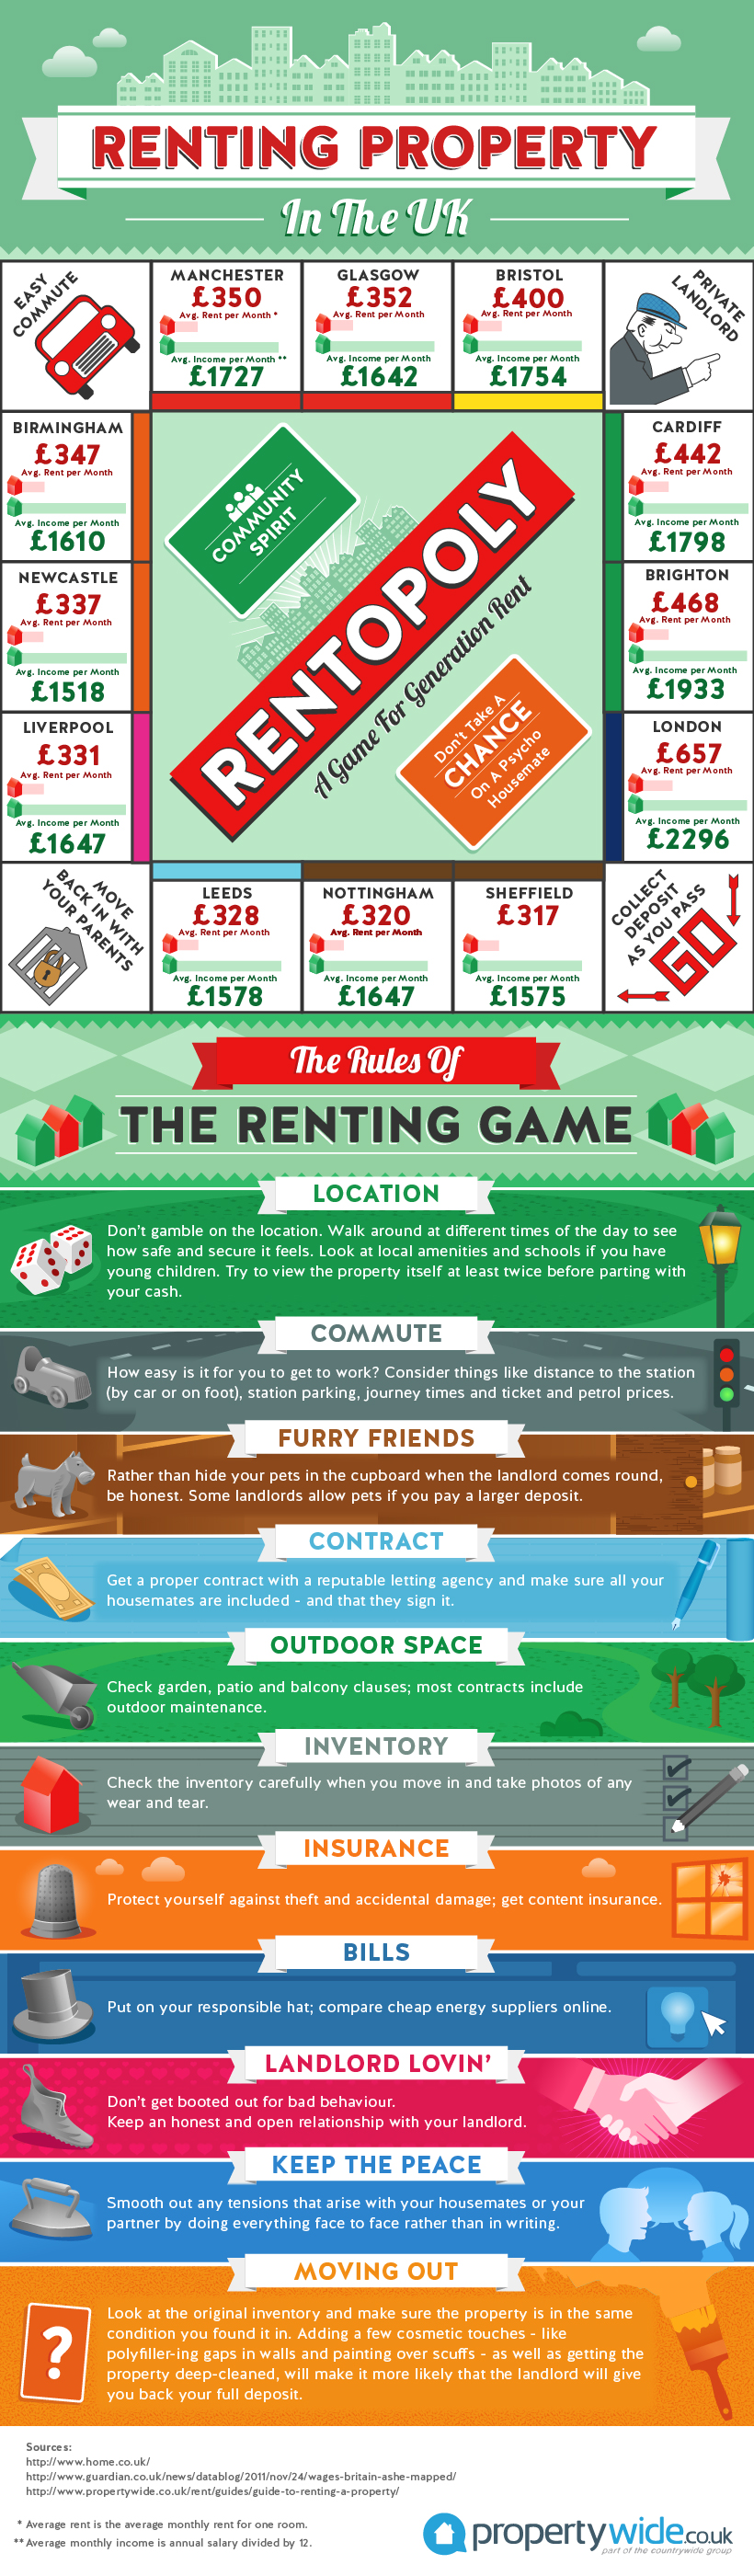 Renting Property in the UK